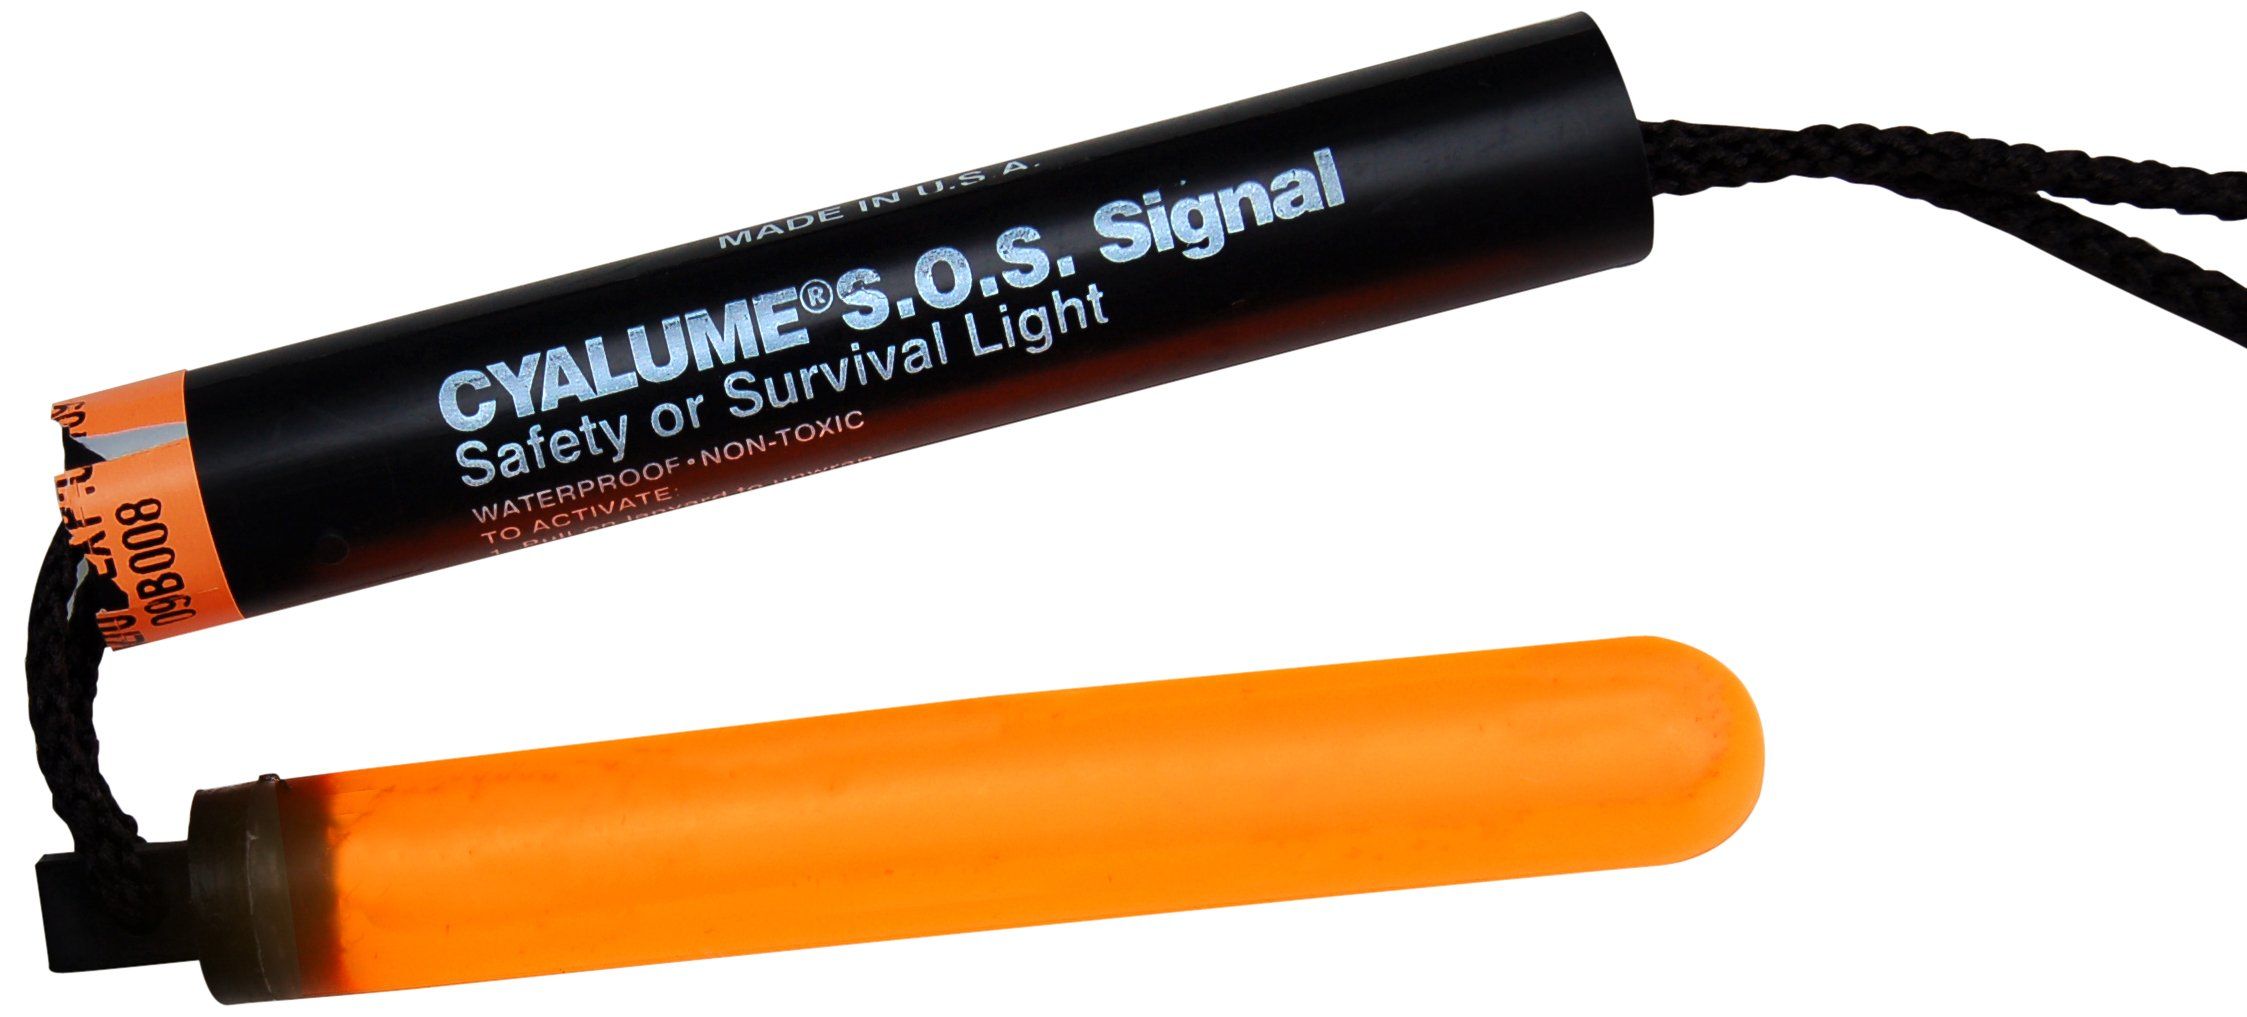 Cyalume ChemLight Military Grade SOS Signal Light Chemical Light Sticks, Orange, Ultra-High Intensity, 5-1/4'' Long, 5 Minute Duration (Pack of 5)